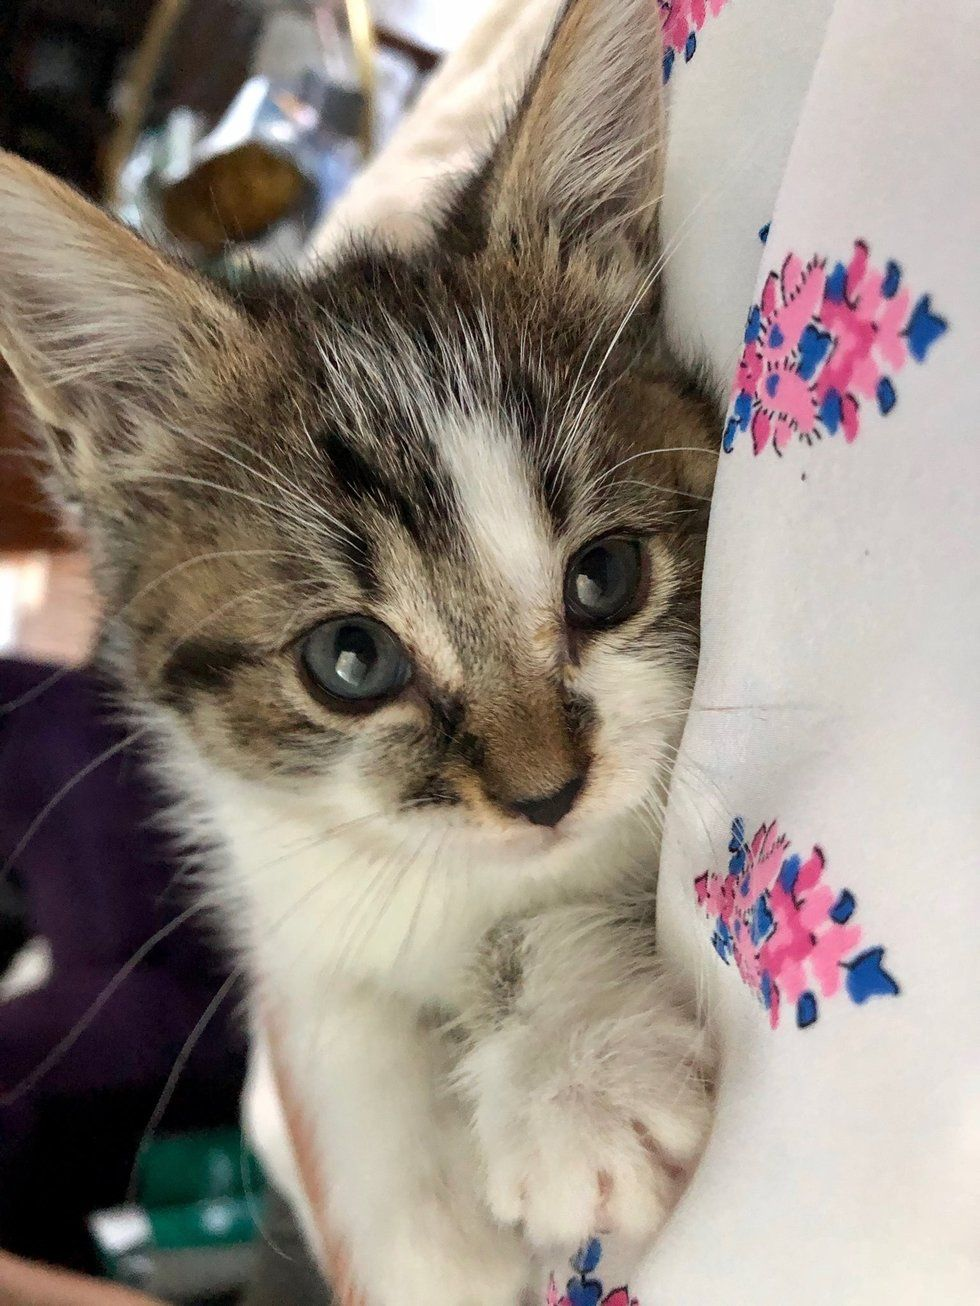 Employee Hears Kitten S Cries And Finds Kitty In Shopping Cart They Rush To Get Him Help Kittens Dog Blog Cat Help